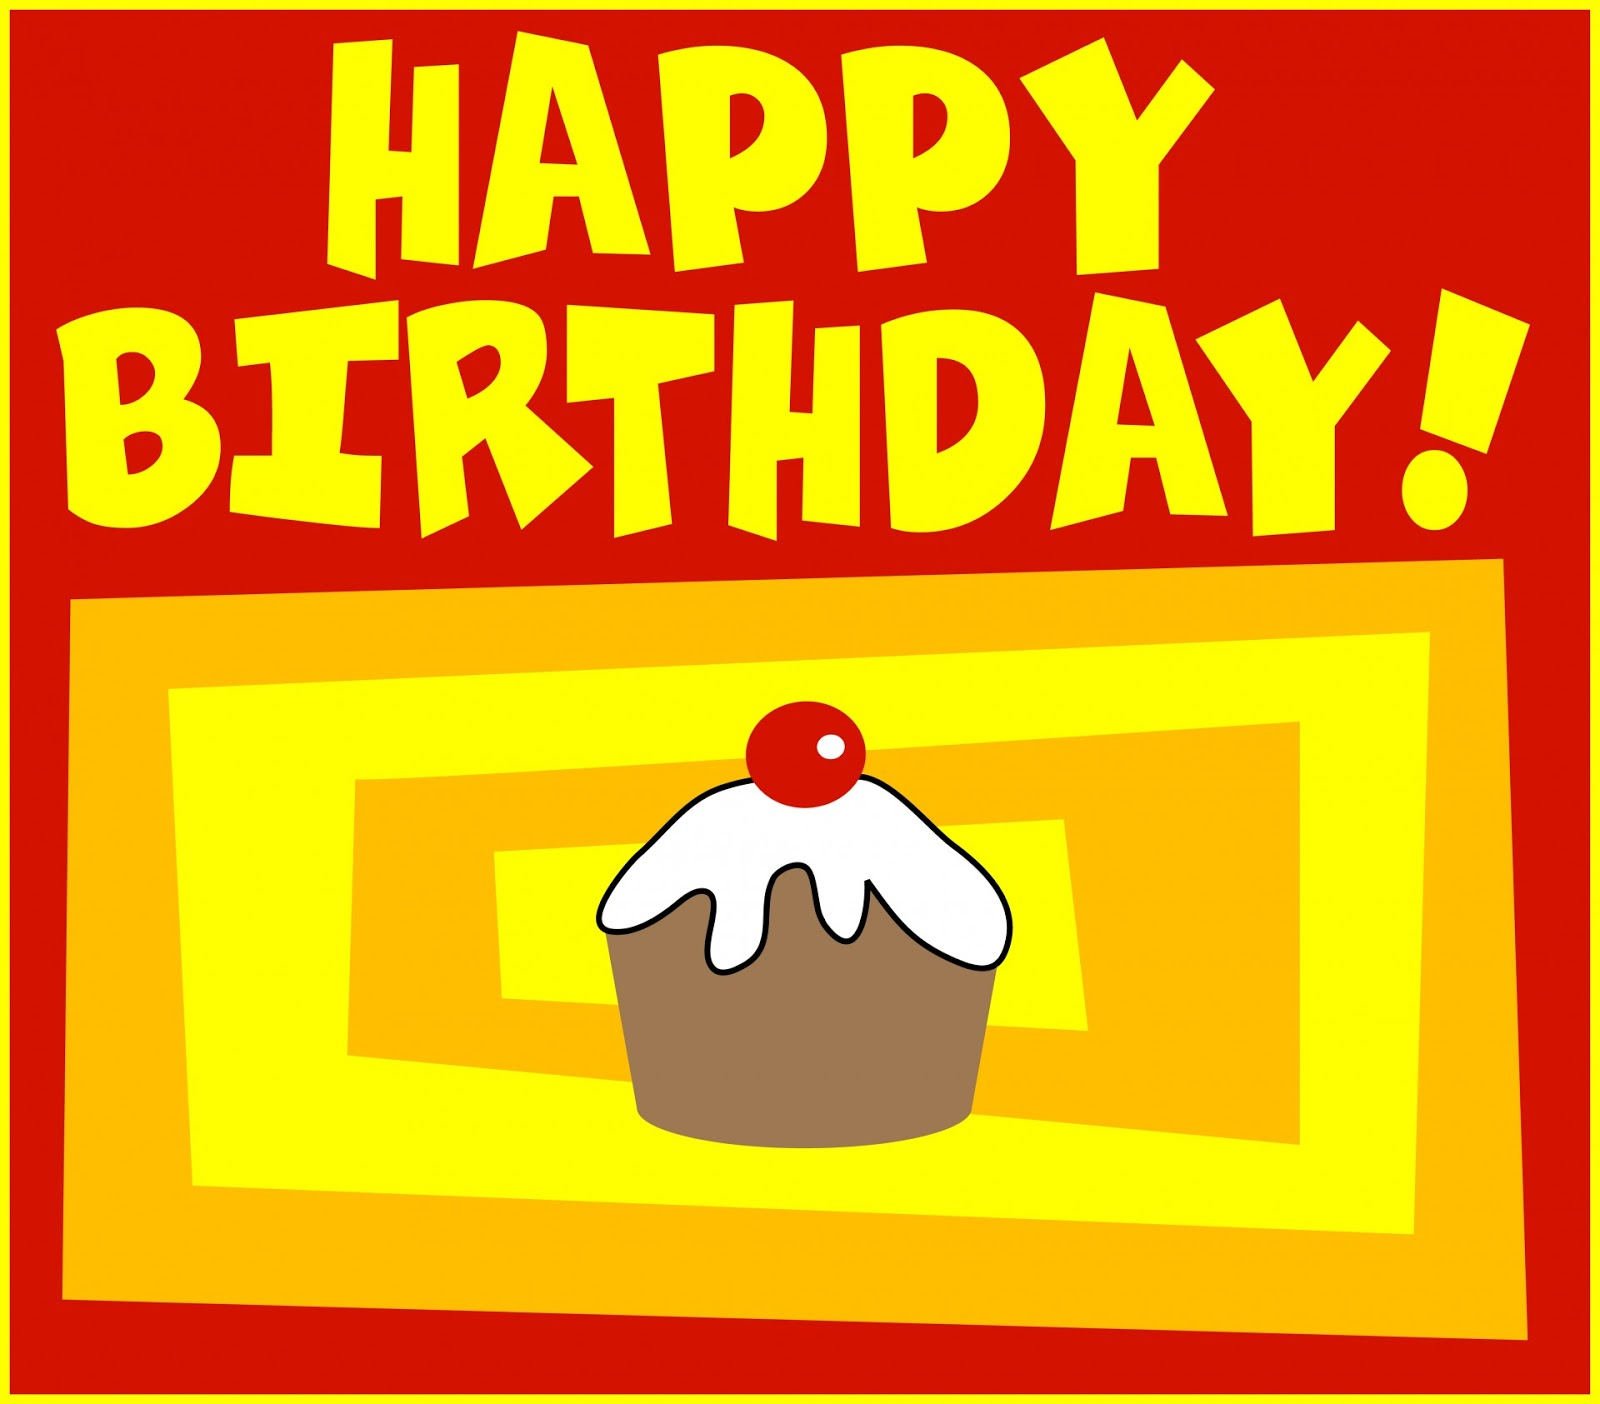 Birthday Special selfie captions Creative quotes for bday Selfies